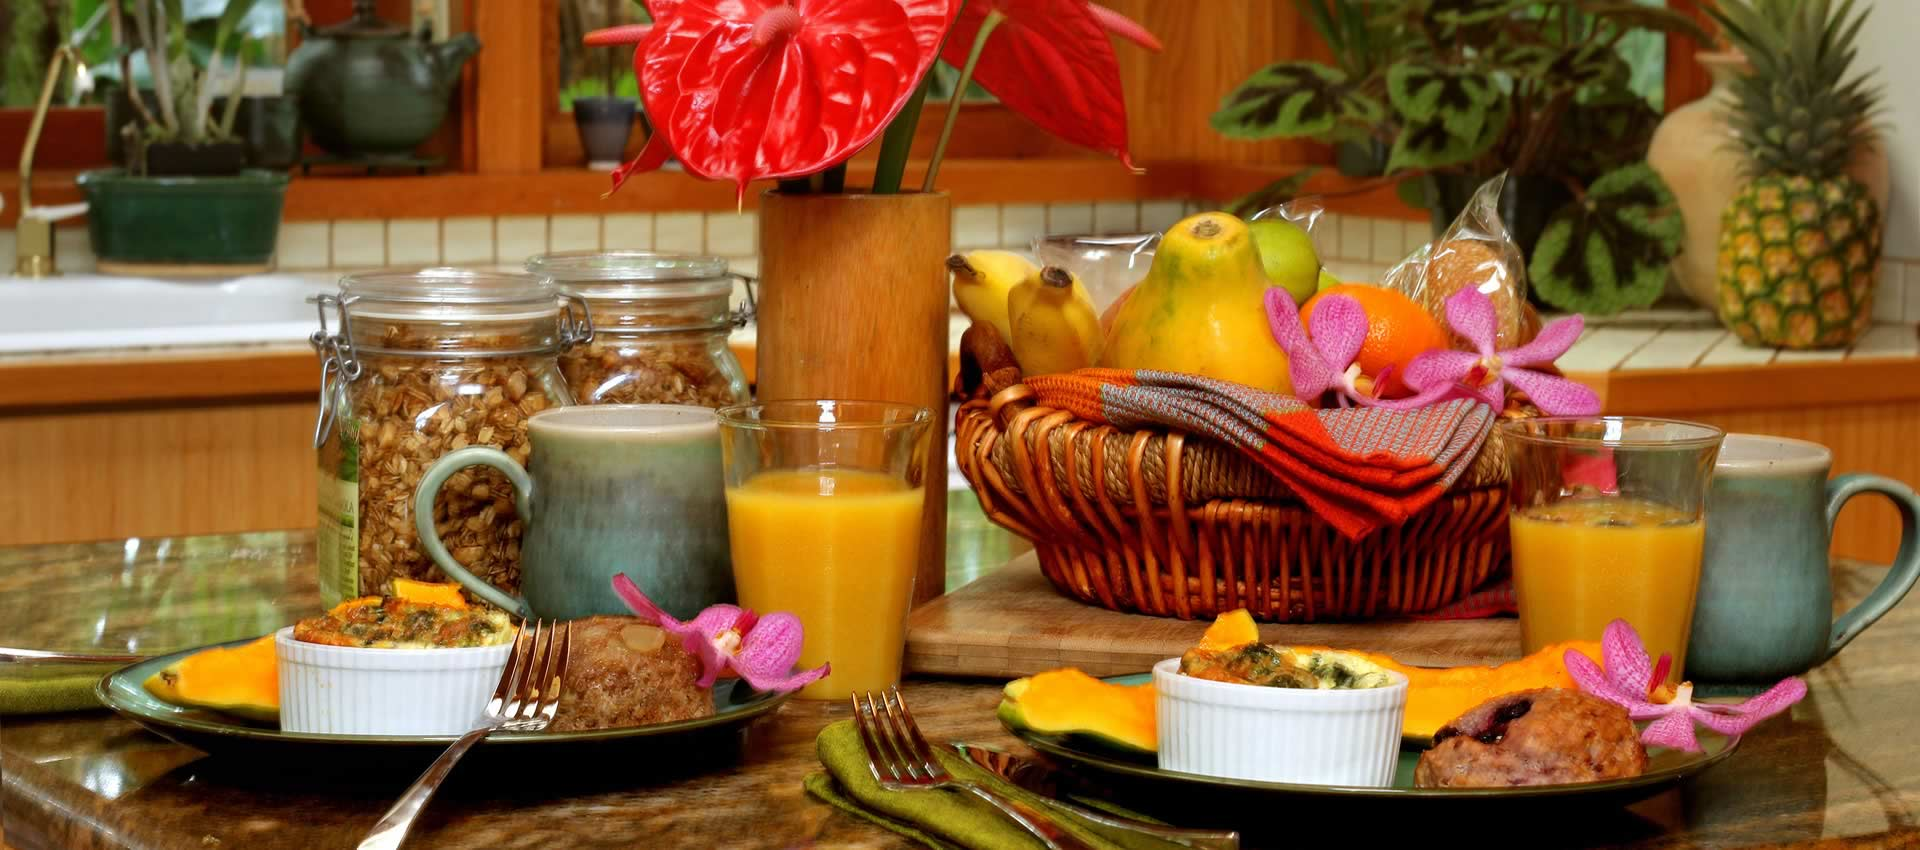 Volcano Retreat Breakfast spread with fresh fruit and juice